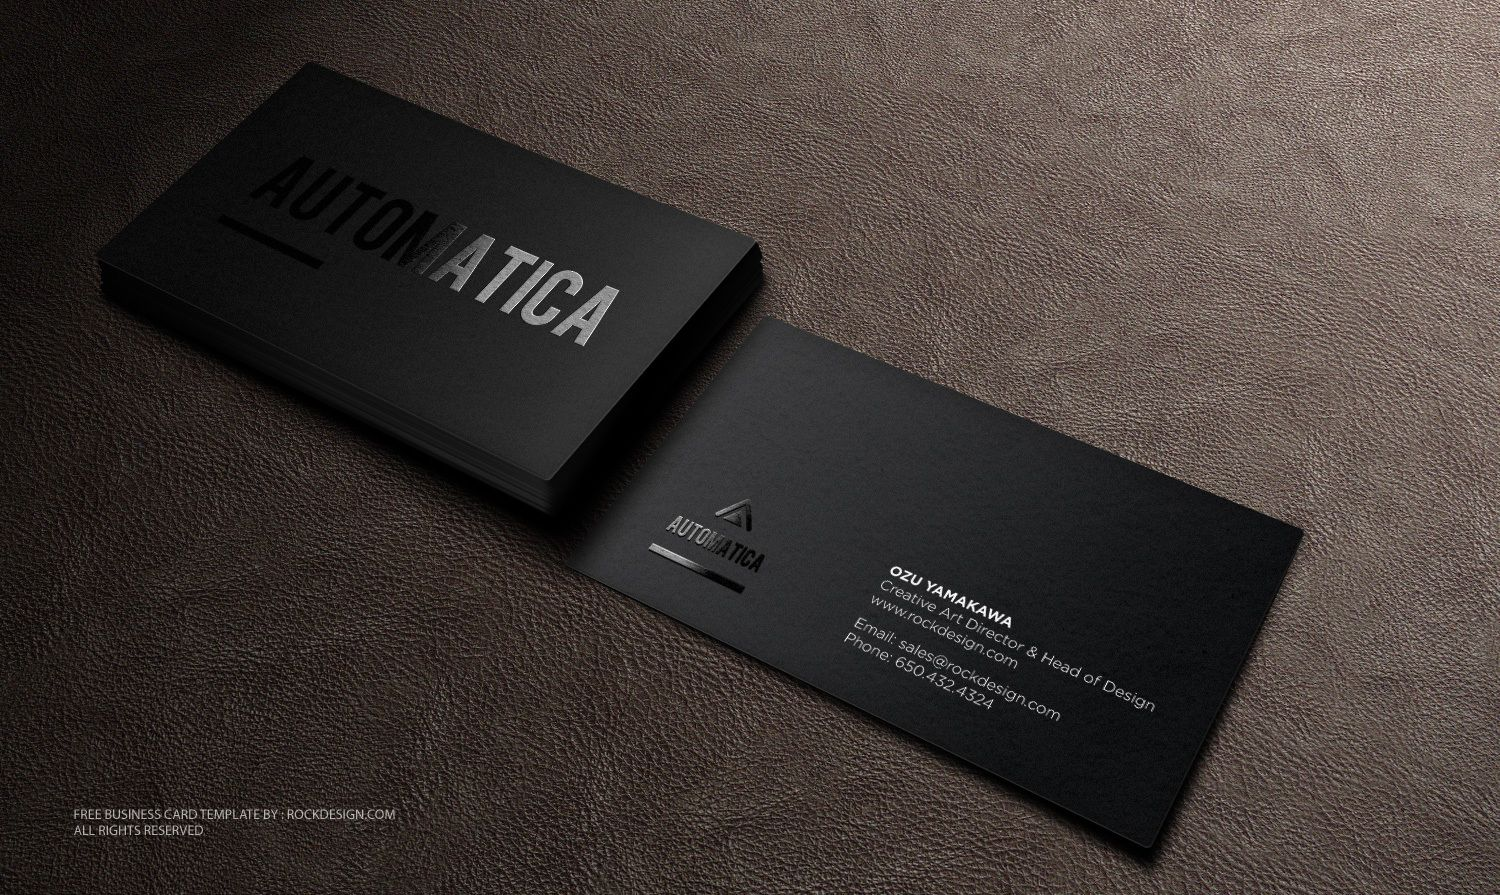 Black Business Card Template Download Free Design Templates - Photography business cards templates free